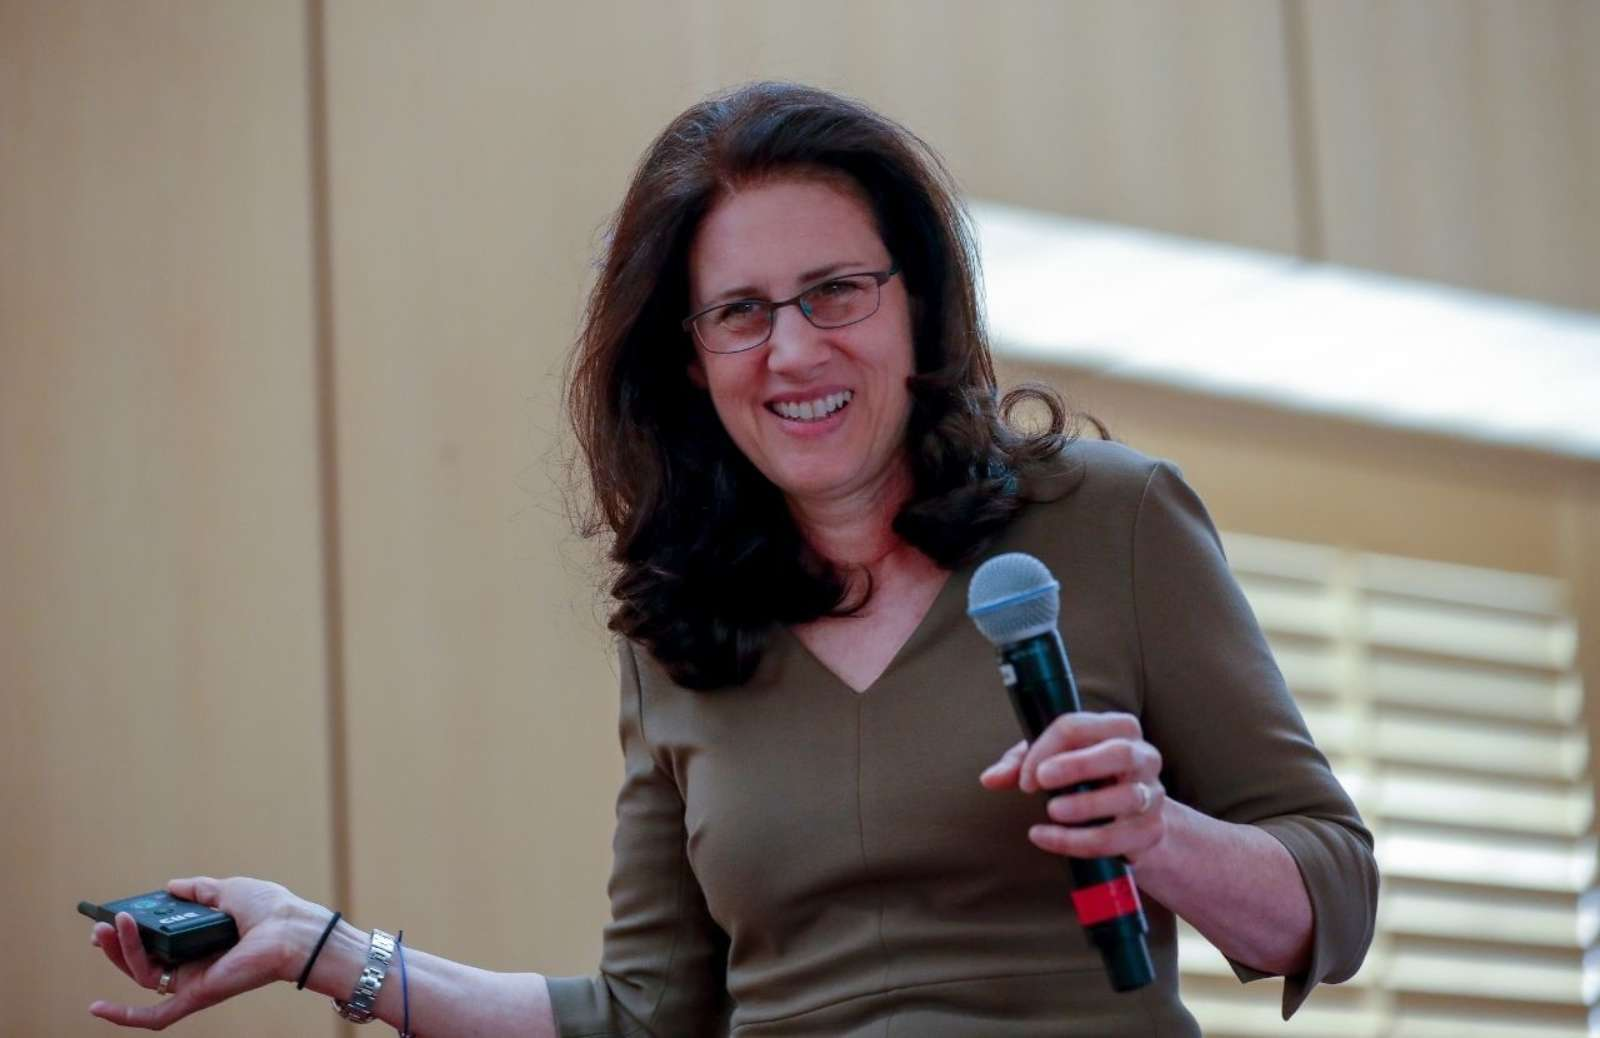 iRelaunch CEO and Co-Founder Carol Fishman Cohen holding microphone and smiling